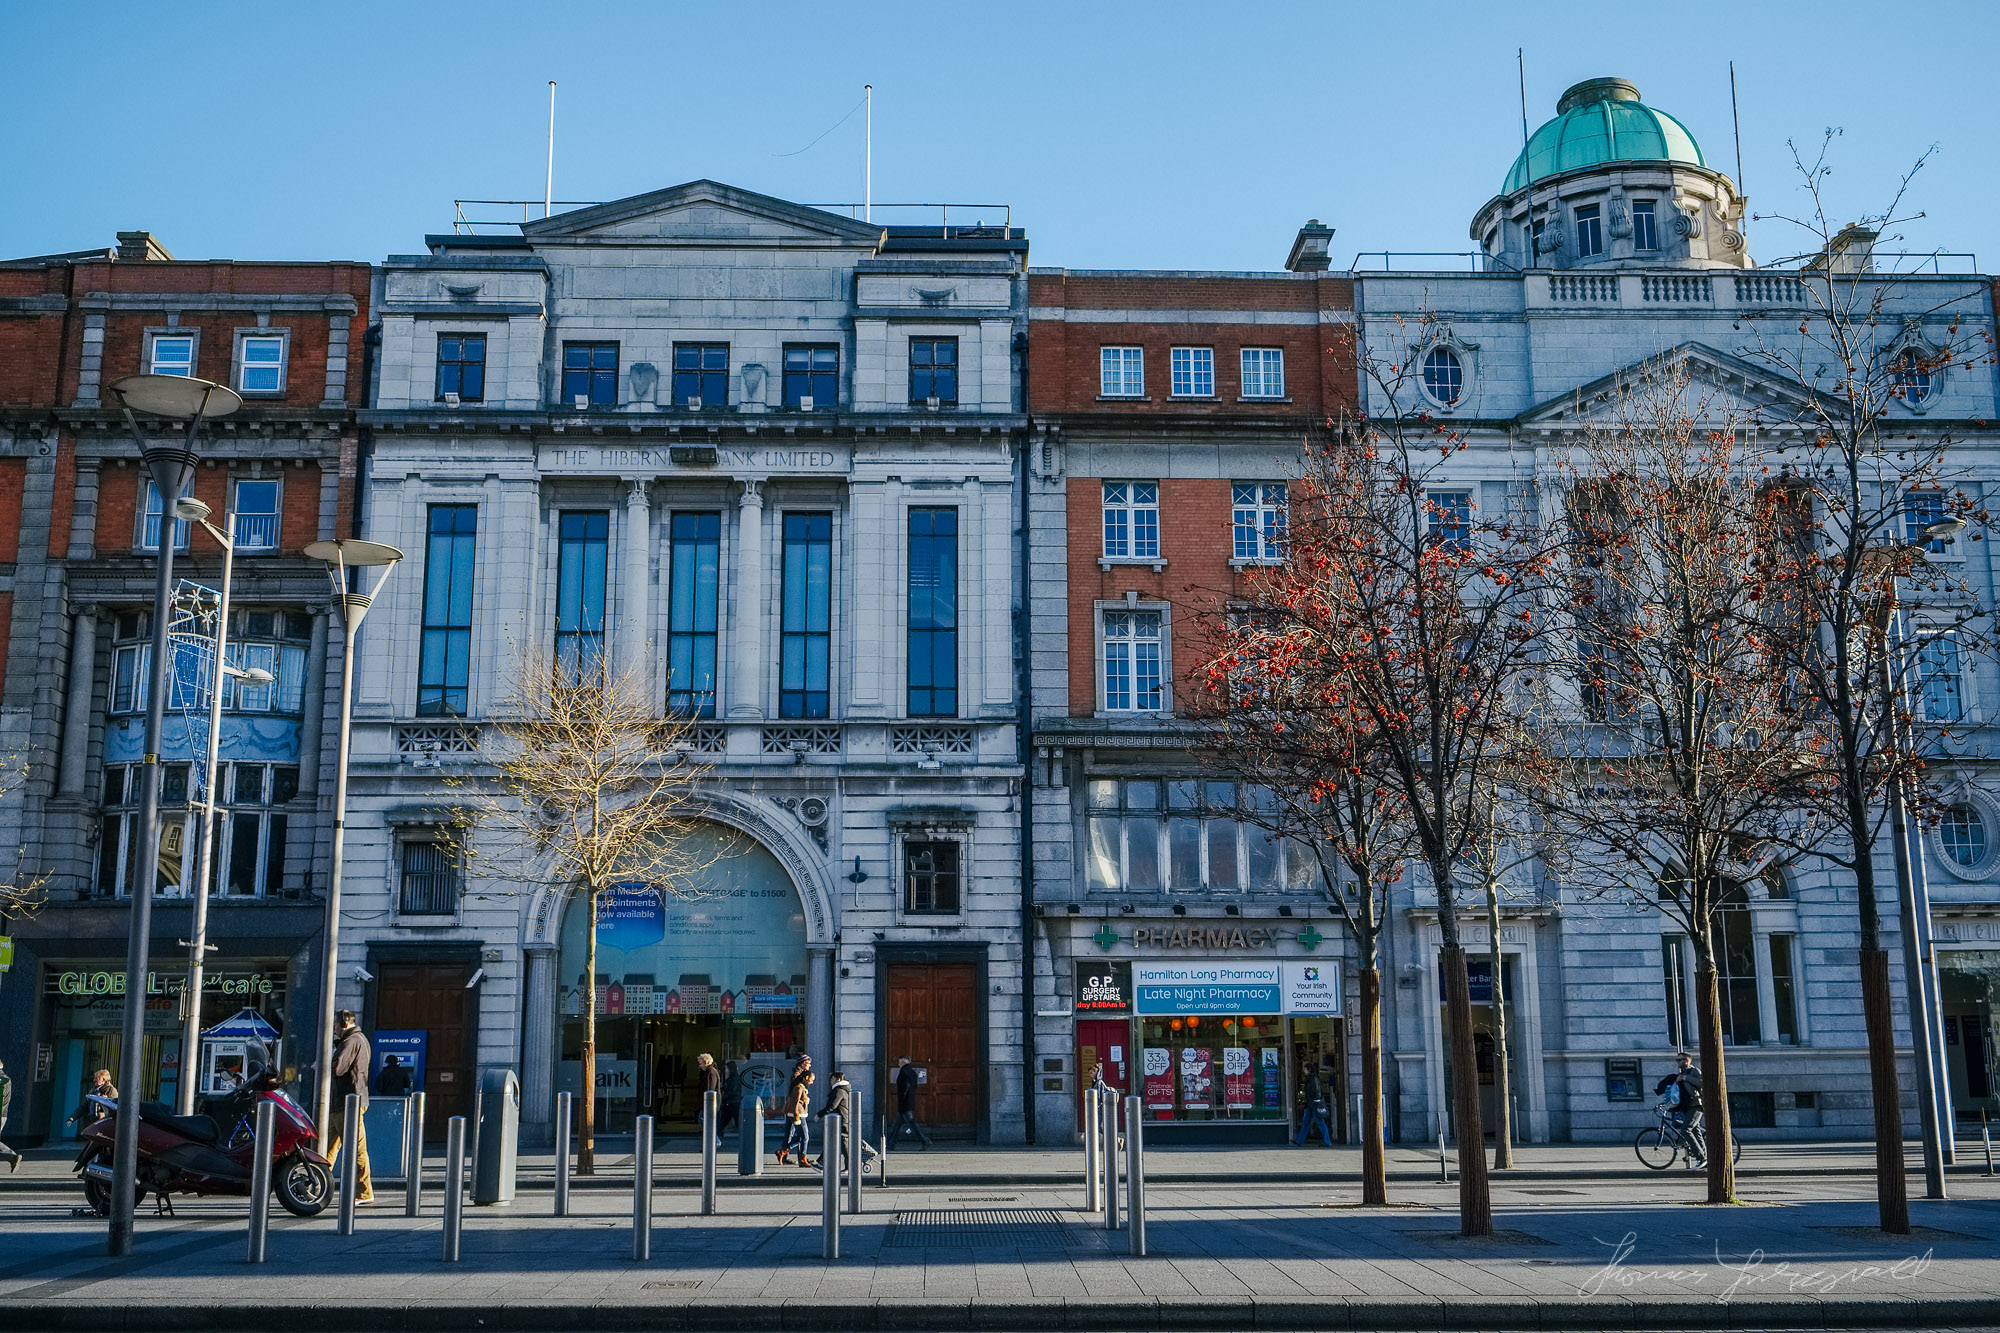 Buildings on O'Connell Street